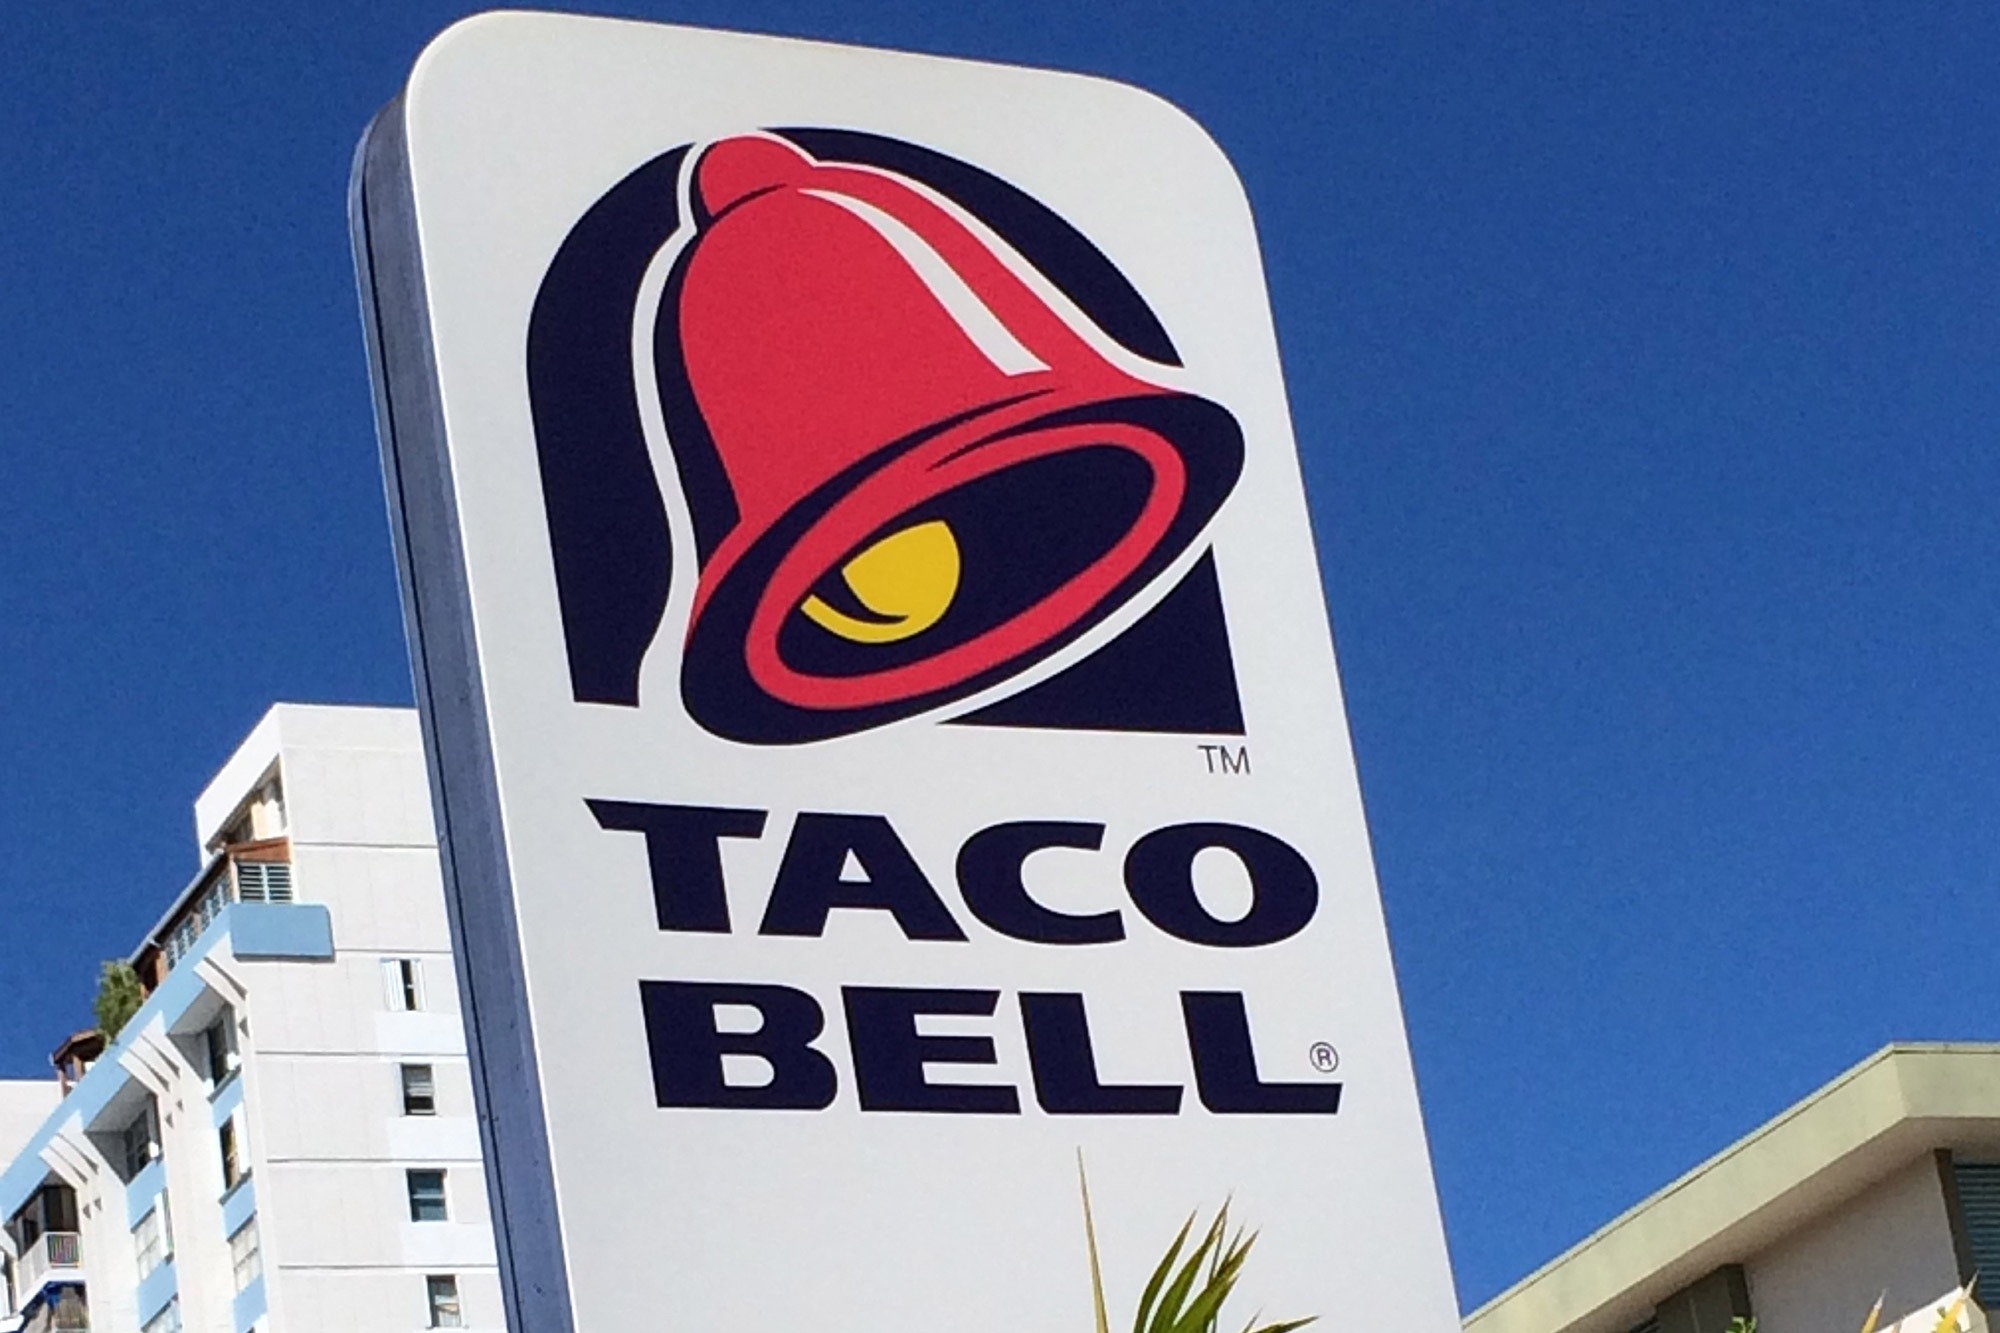 A Taco Bell sign is pictured in San Juan, Puerto Rico on Jan. 26, 2015.